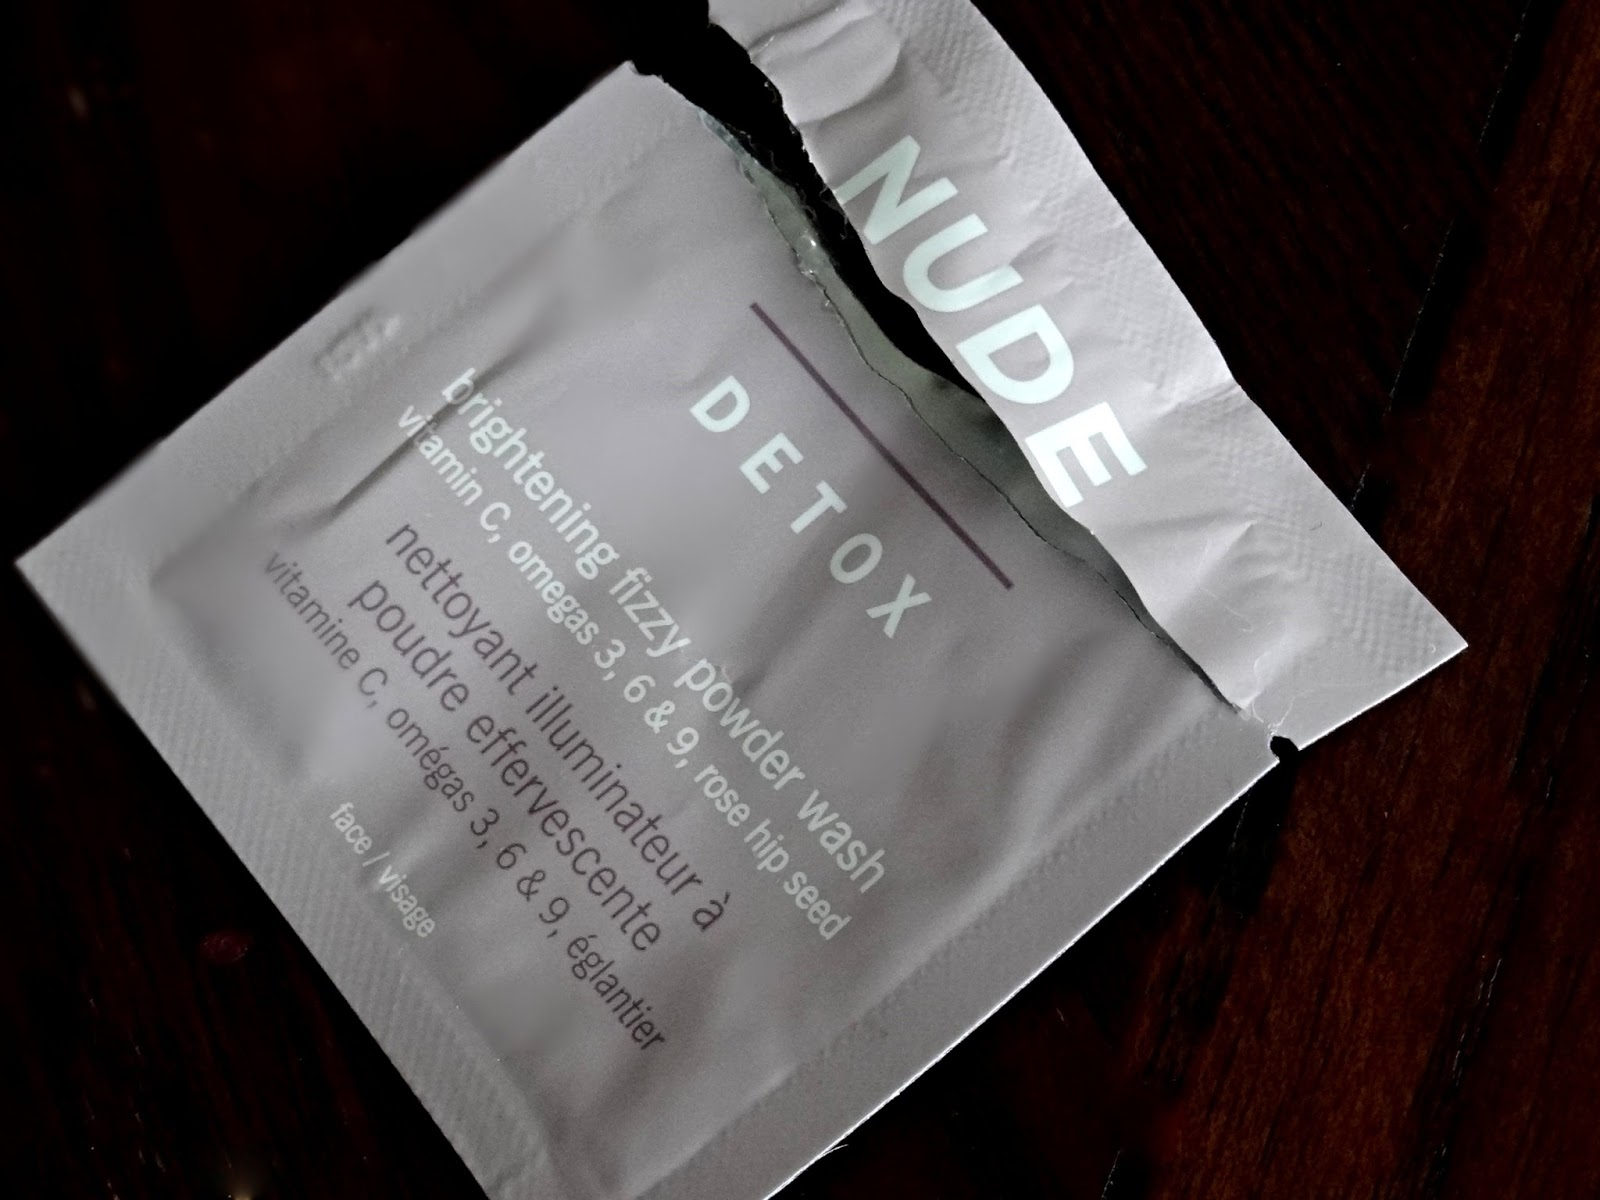 Nude Skincare Detox Brightening Fizzy Wash Review, Photos